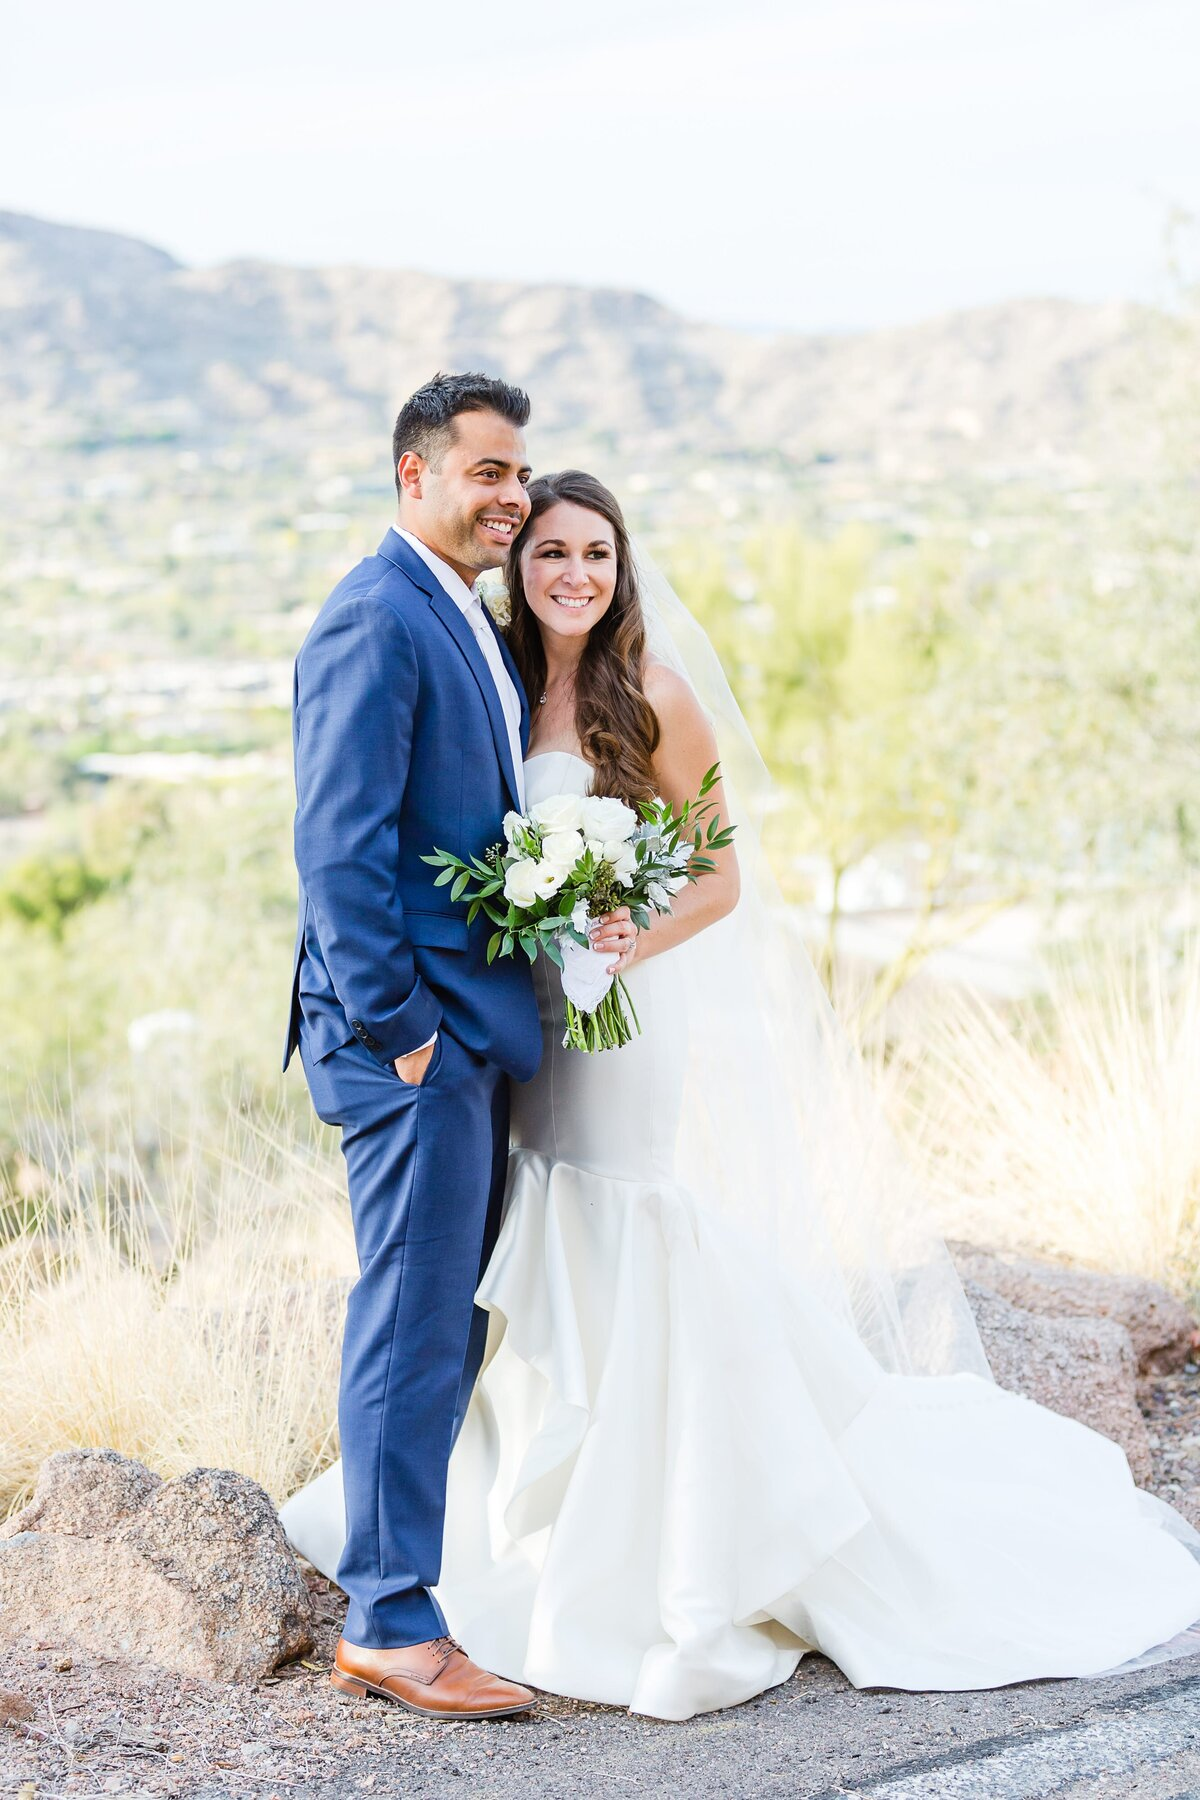 Sanctuary-on-Camelback-Wedding-by-Leslie-Ann-Photography-00019